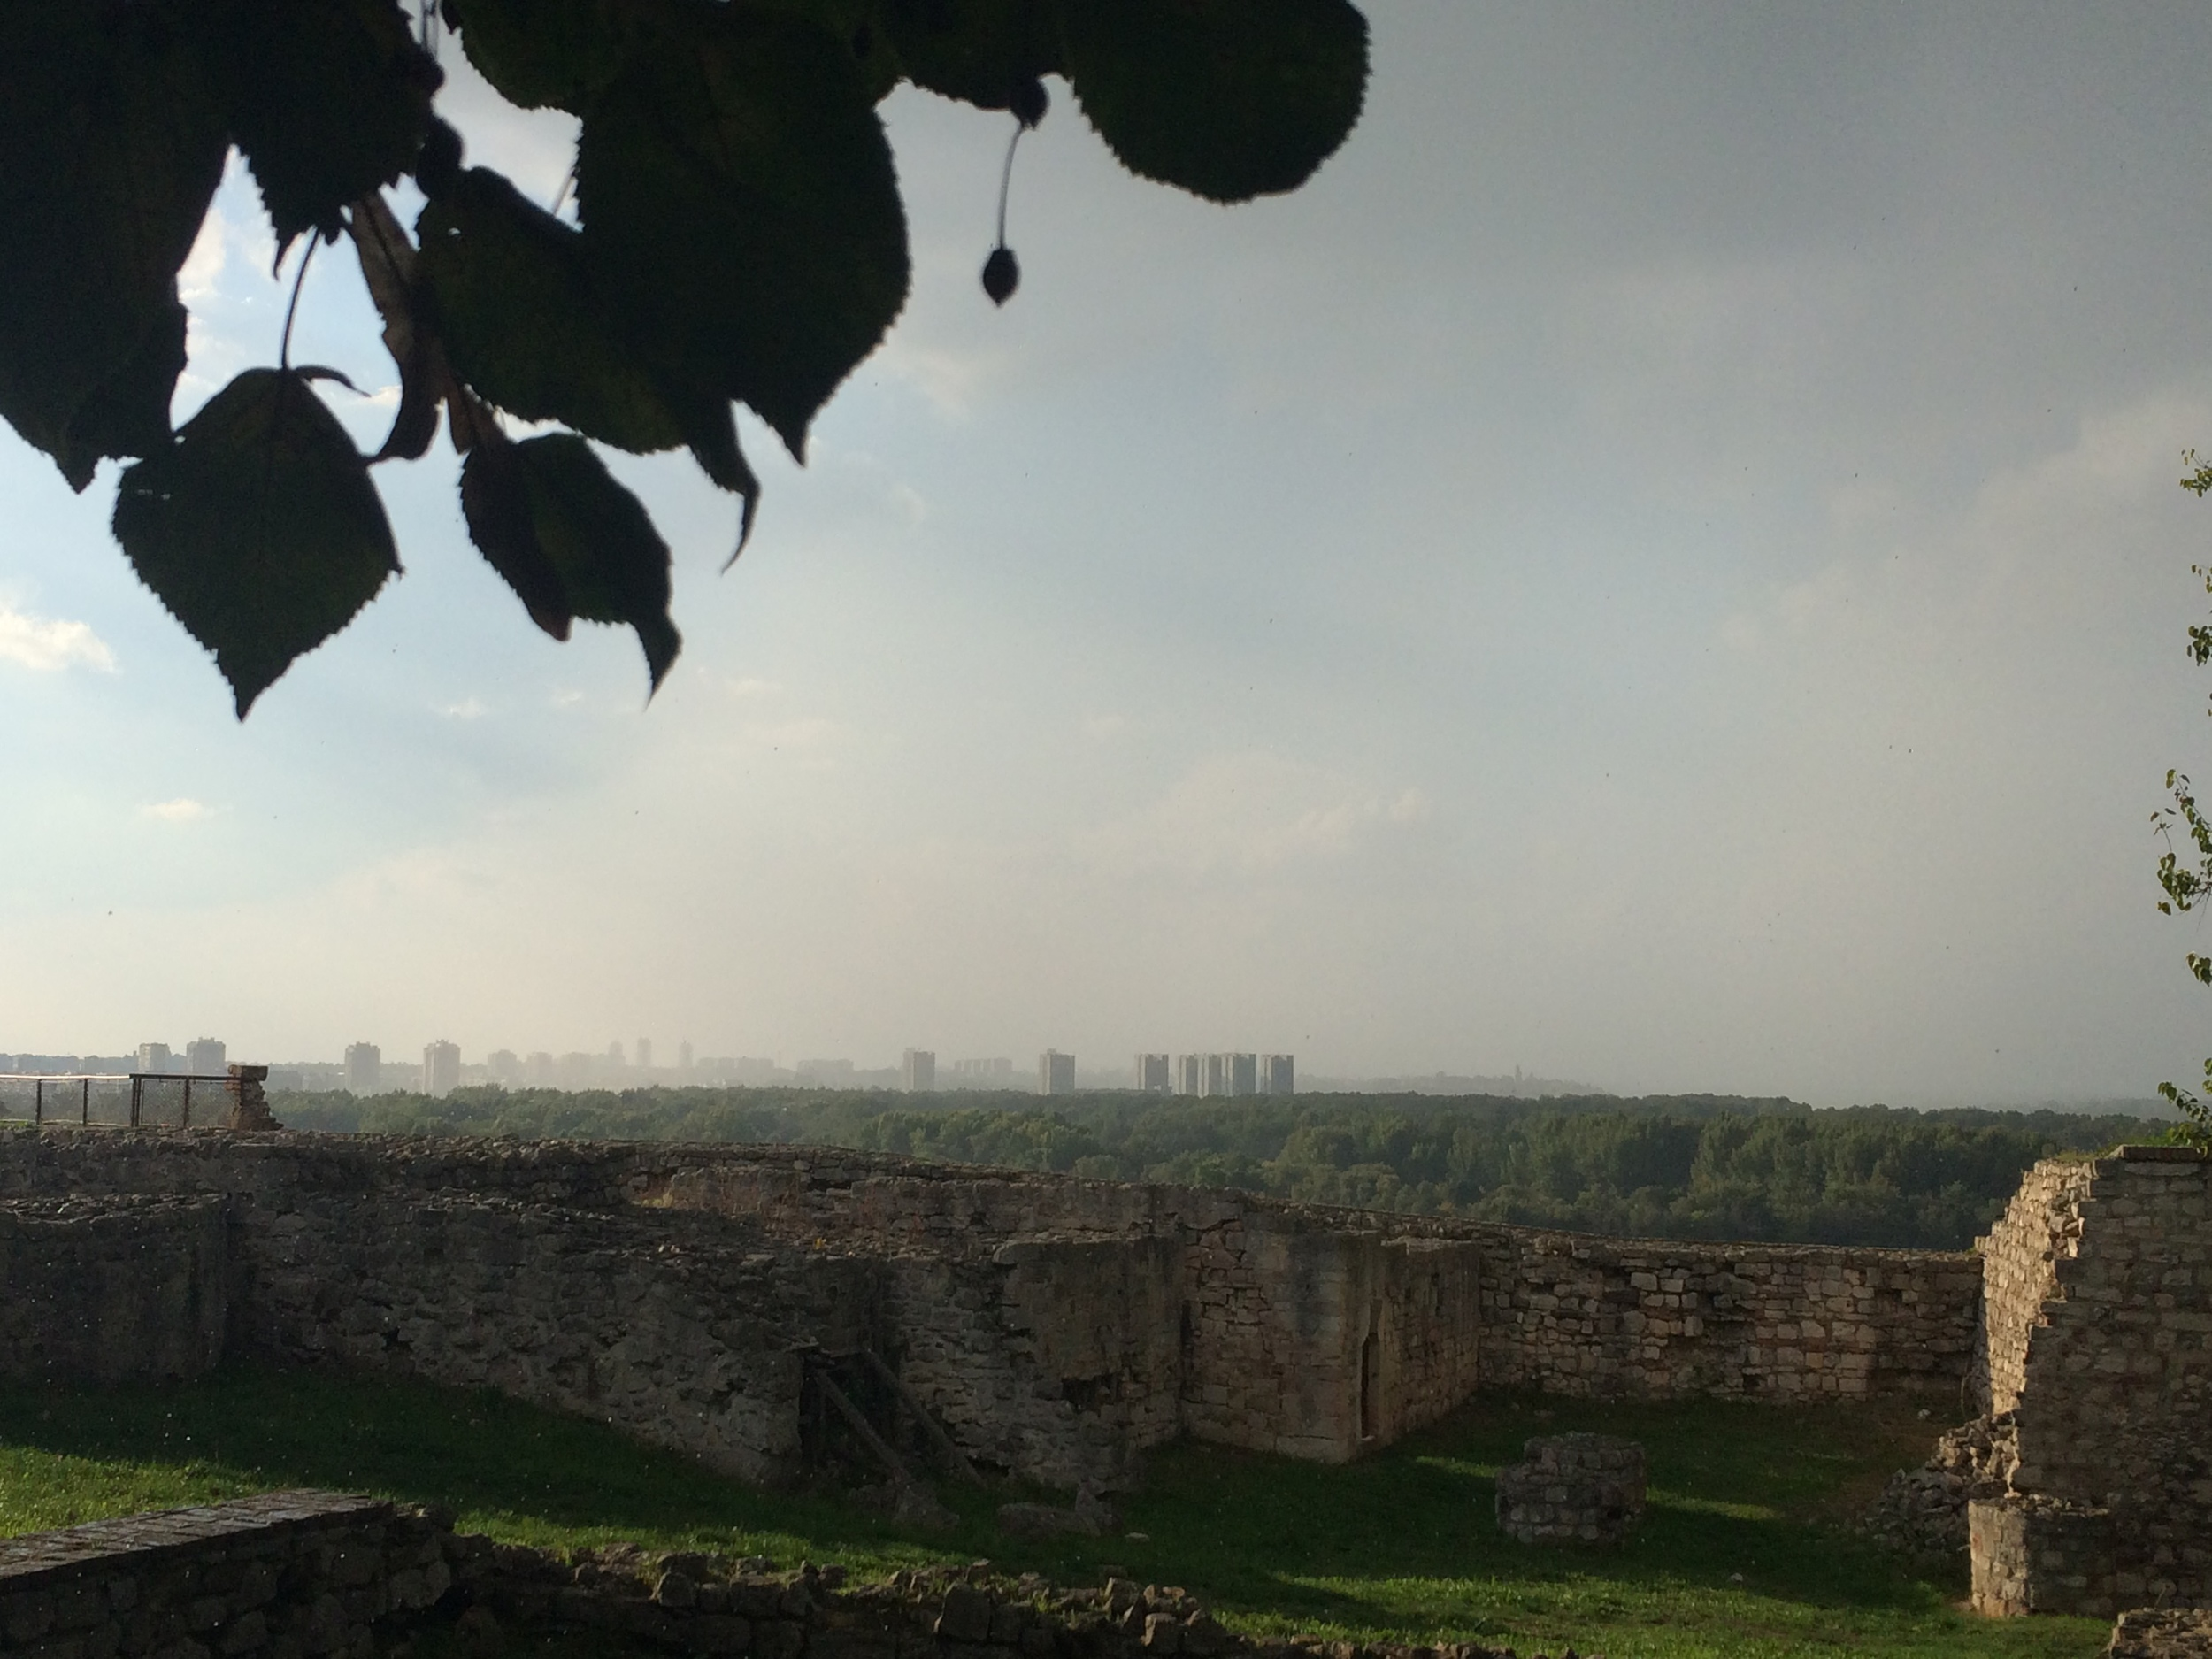 Full disclosure: this picture is from an earlier Kalemegdan excursion. It was just too good of a pic to waste.